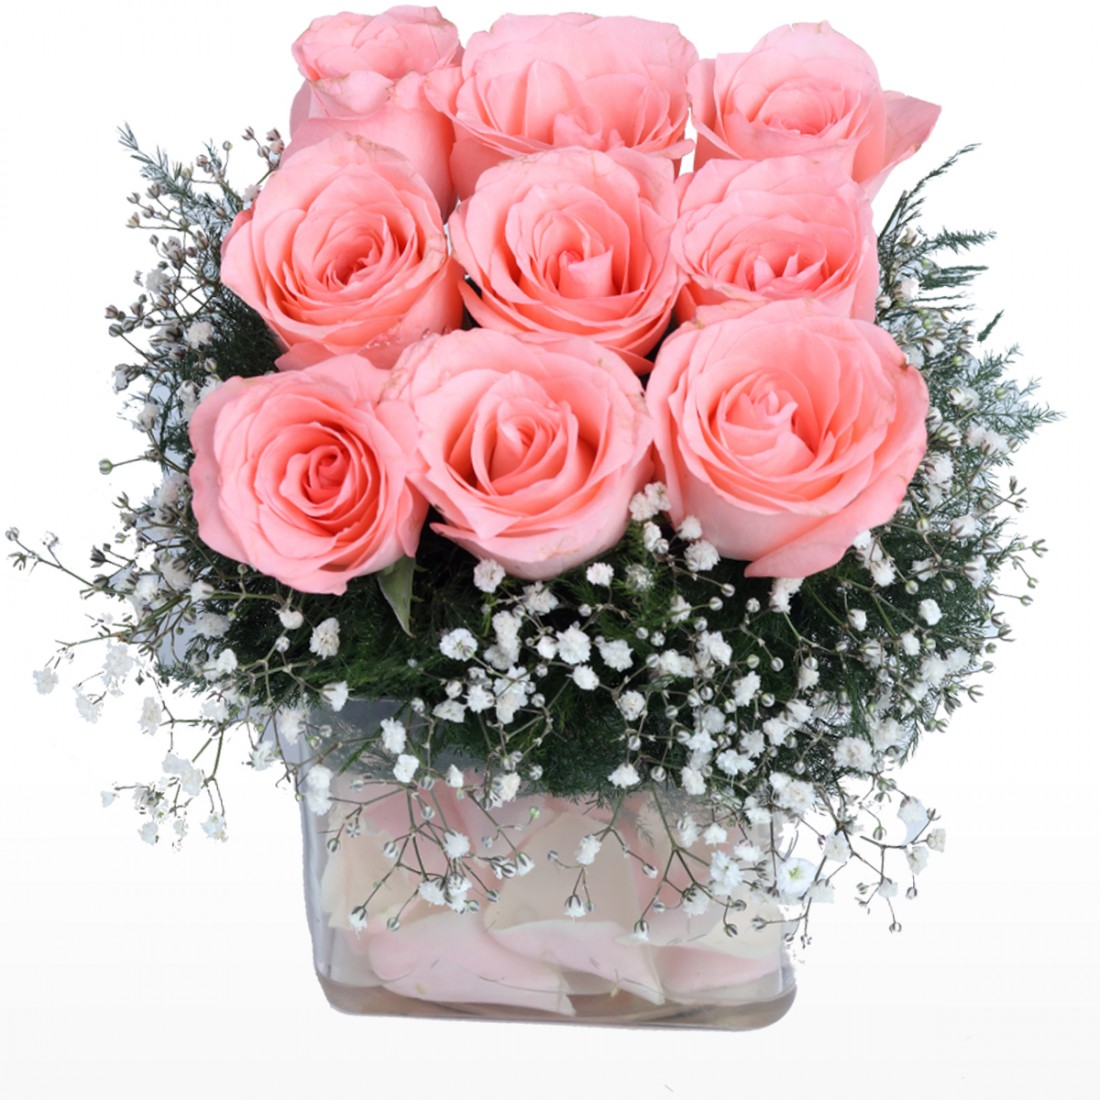 9 Pink Roses In Small Vase